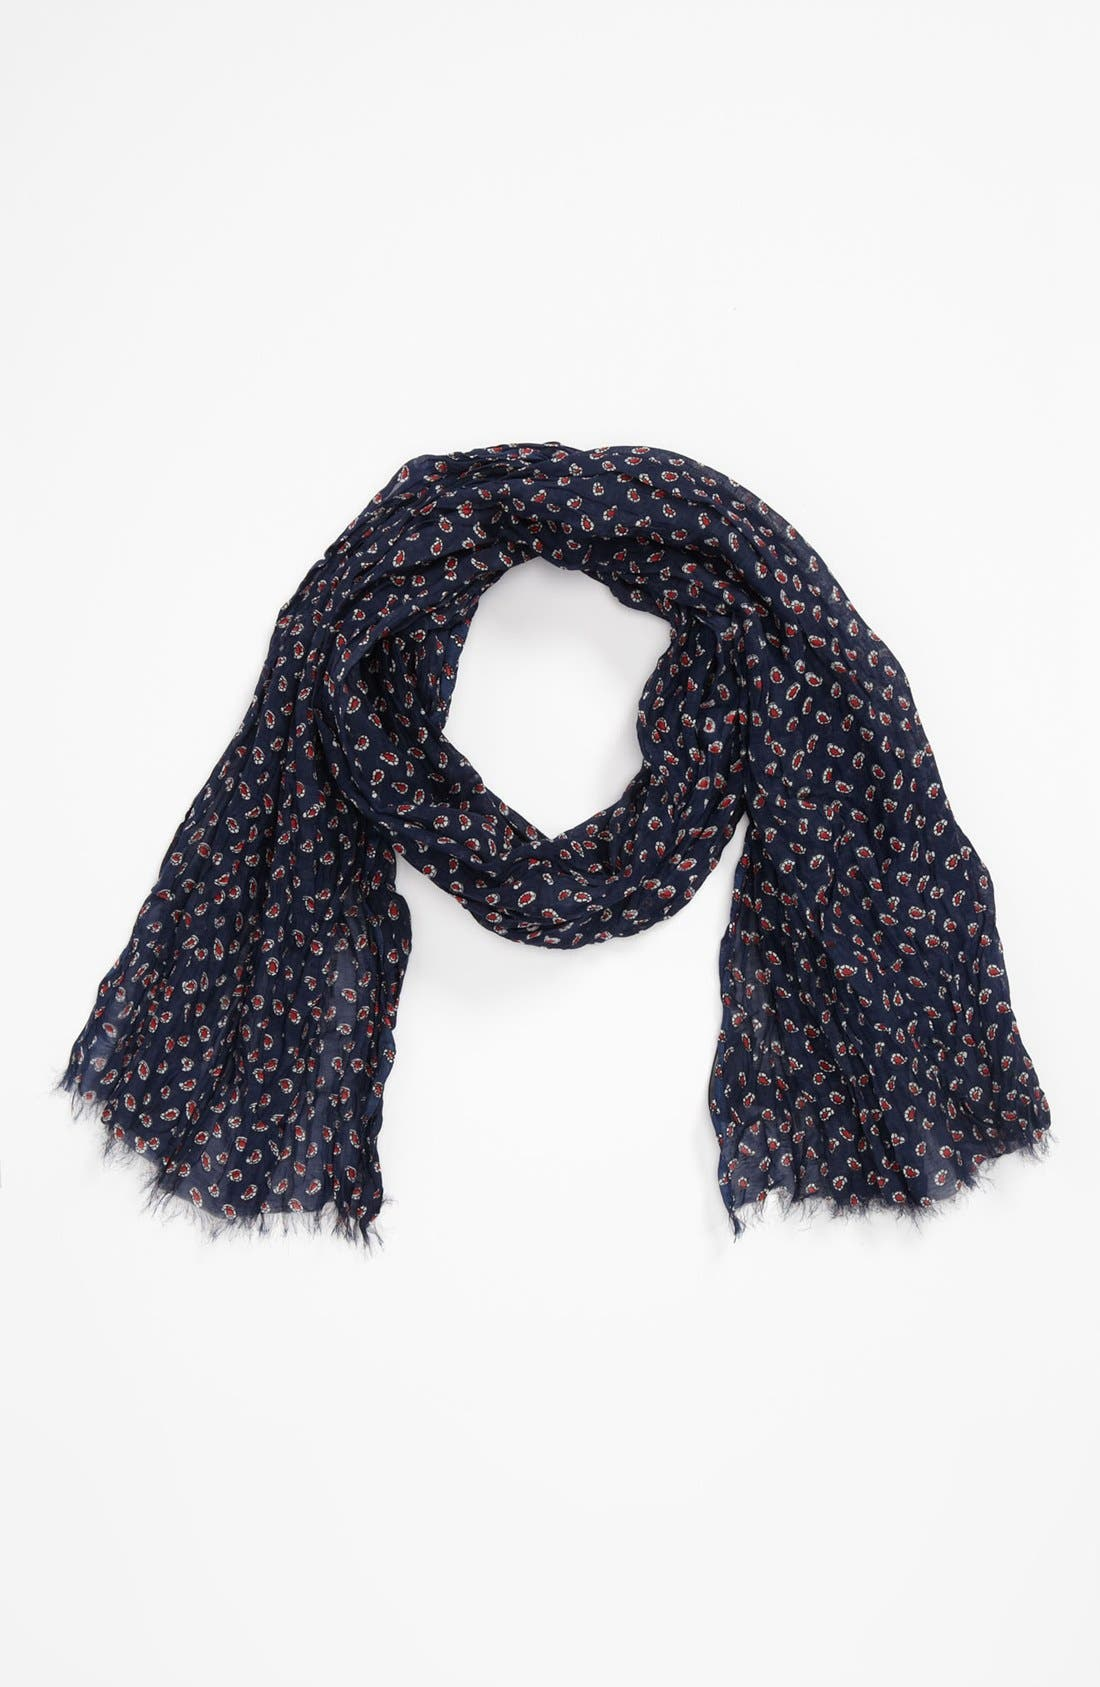 Alternate Image 1 Selected - Paul Smith Accessories Paisley Scarf